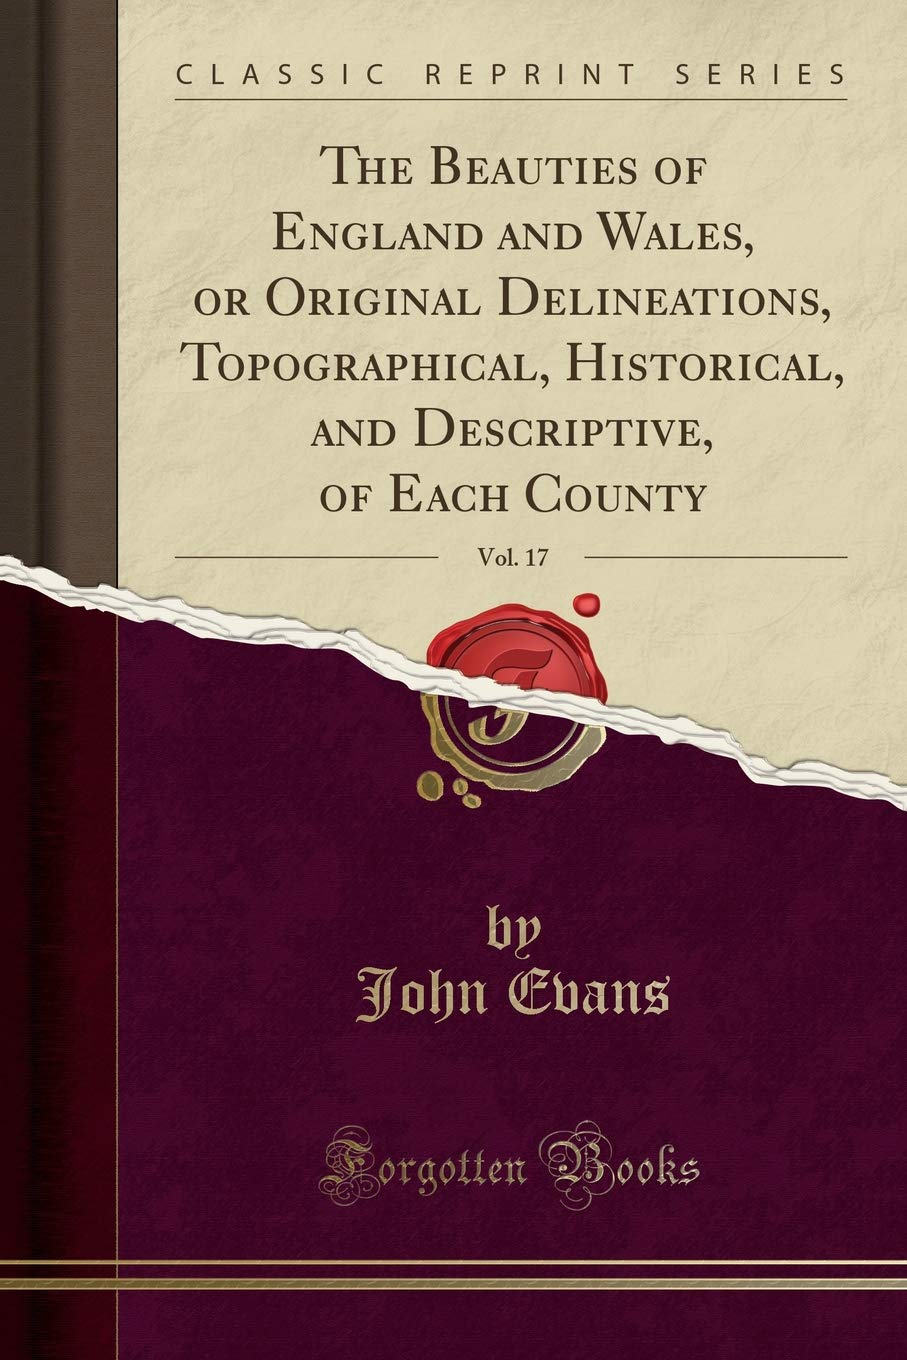 The Beauties of England and Wales, or Original Delineations, Topographical, Historical, and Descriptive, of Each County, Vol. 17 (Classic Reprint) ebook